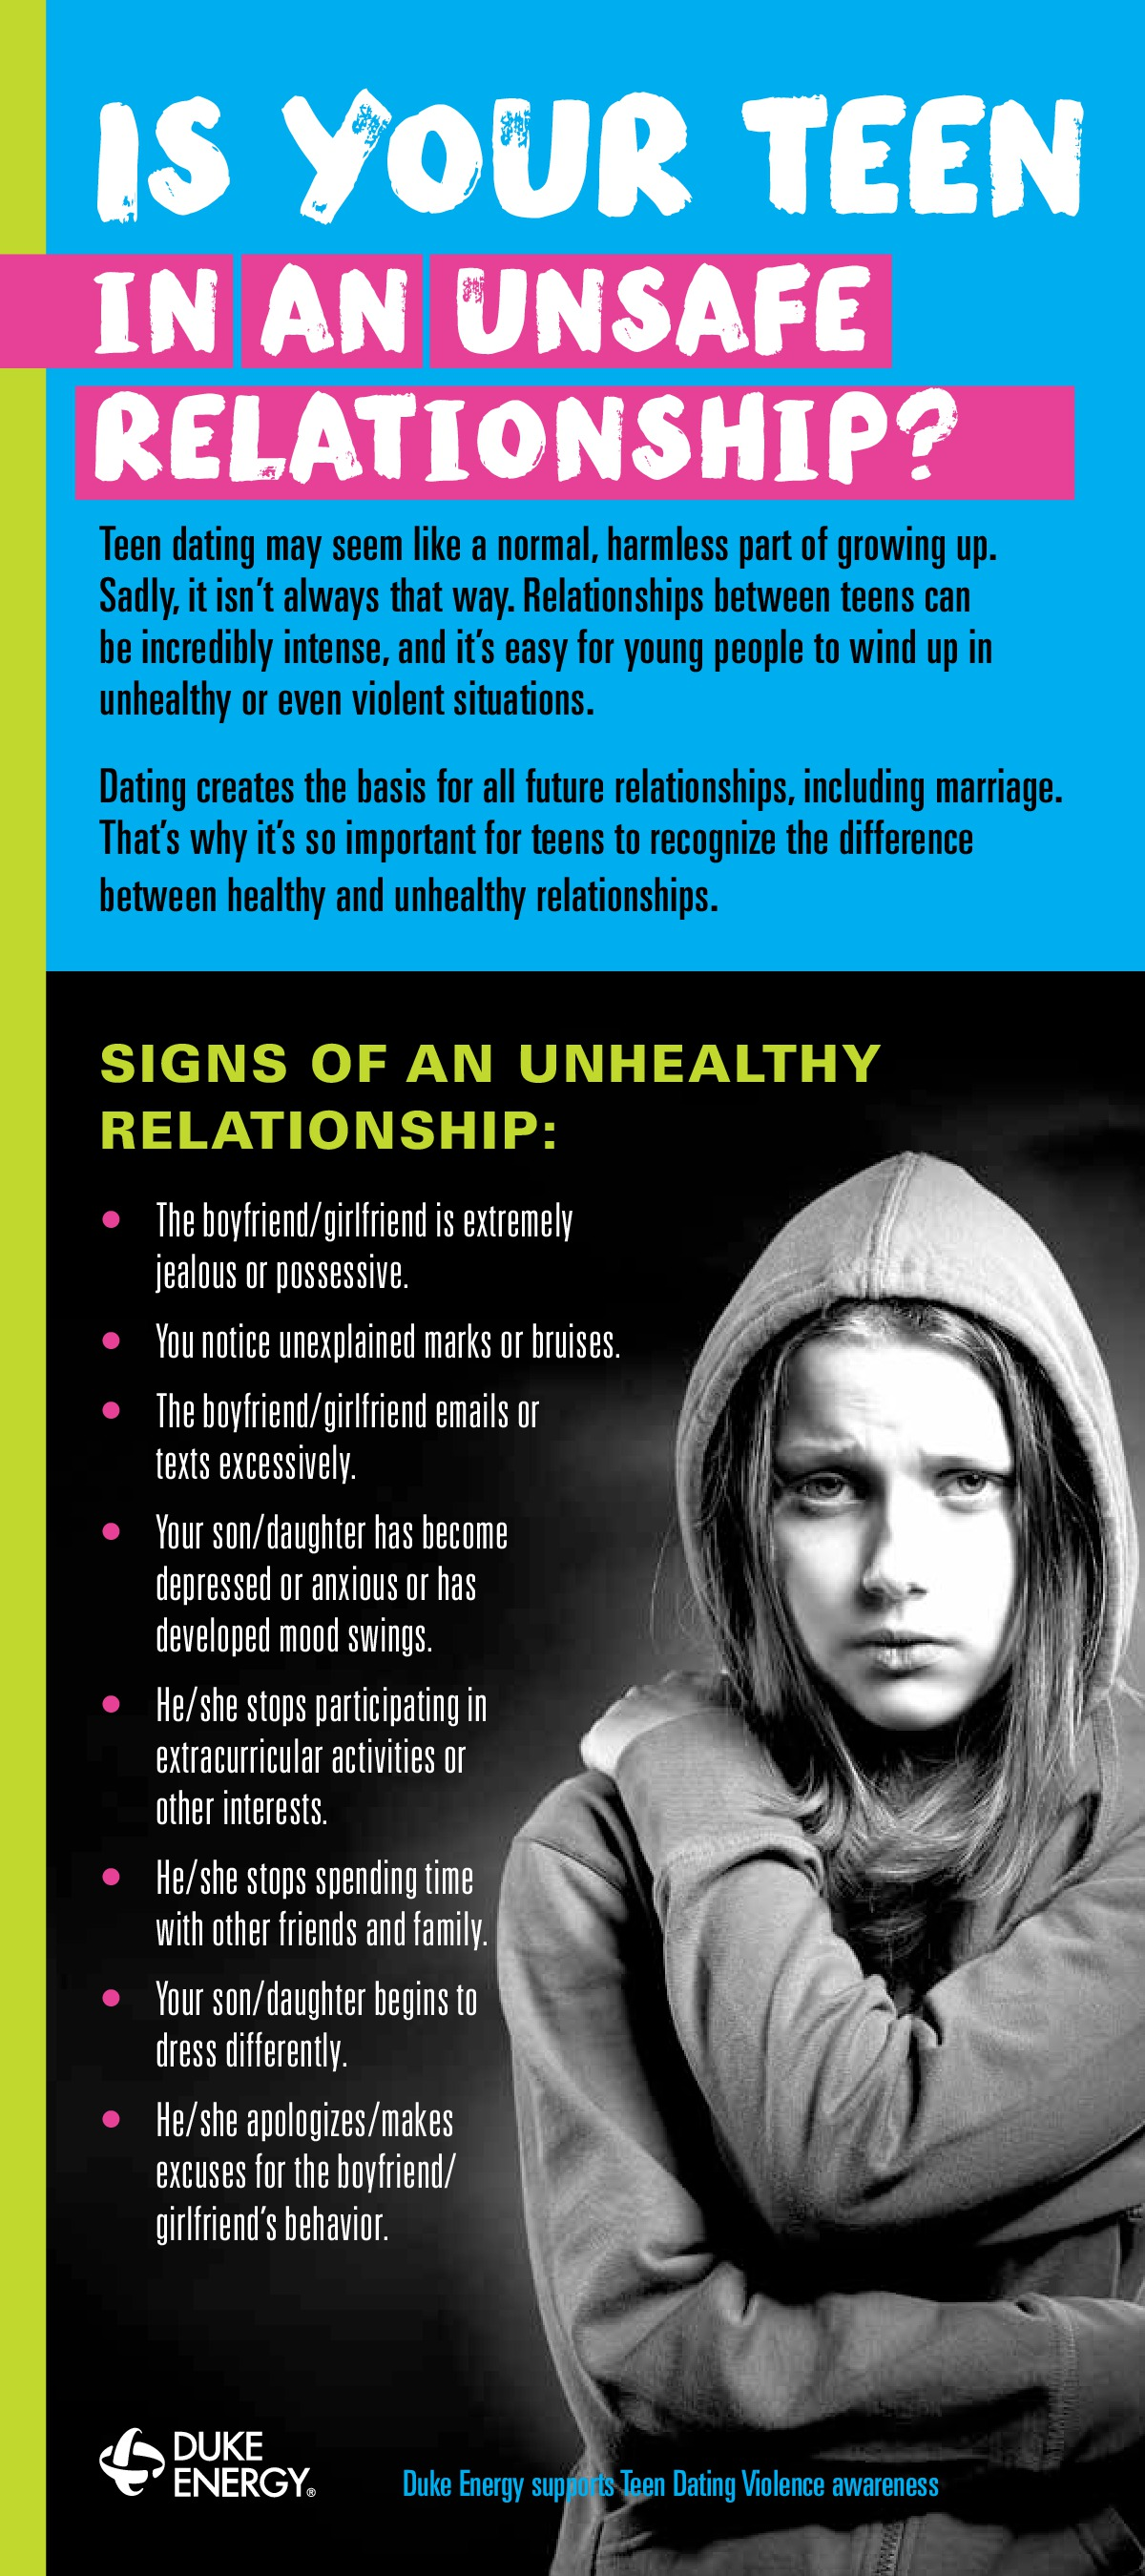 Can community teen dating violence program be applied in churches